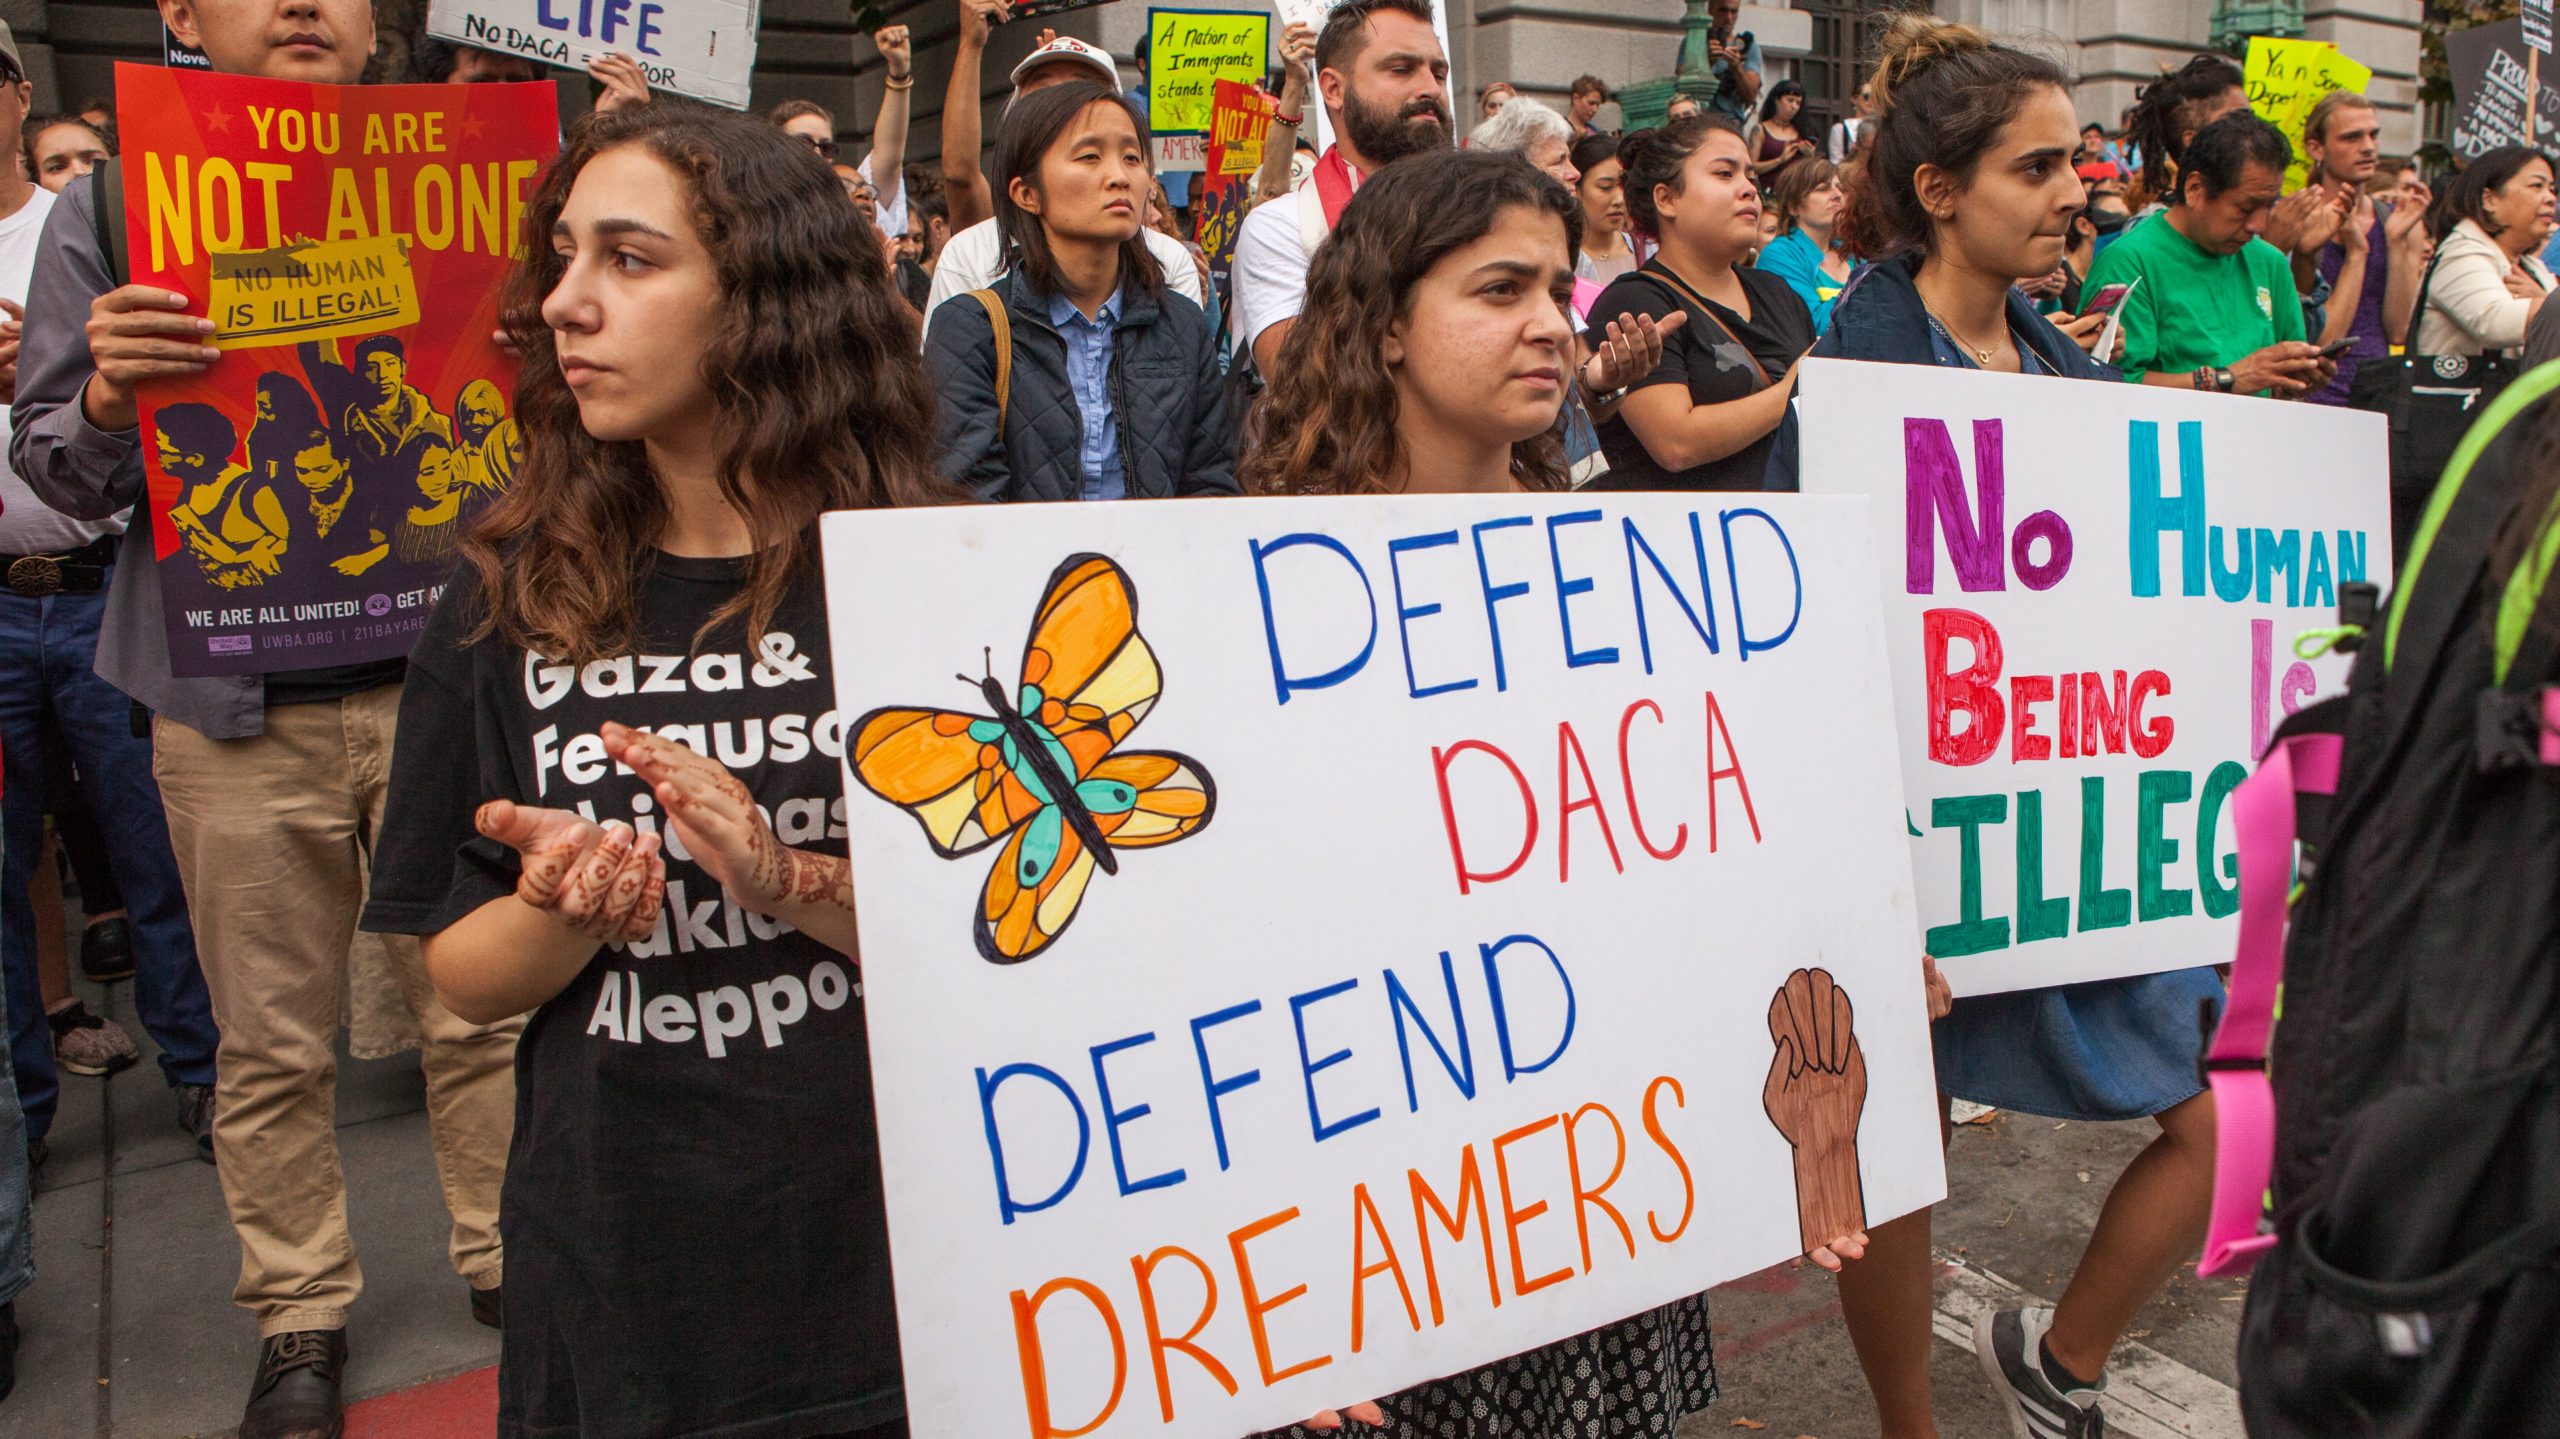 https://en.wikipedia.org/wiki/Deferred_Action_for_Childhood_Arrivals#/media/File:DACA_rally_SF_20170905-8471.jpg